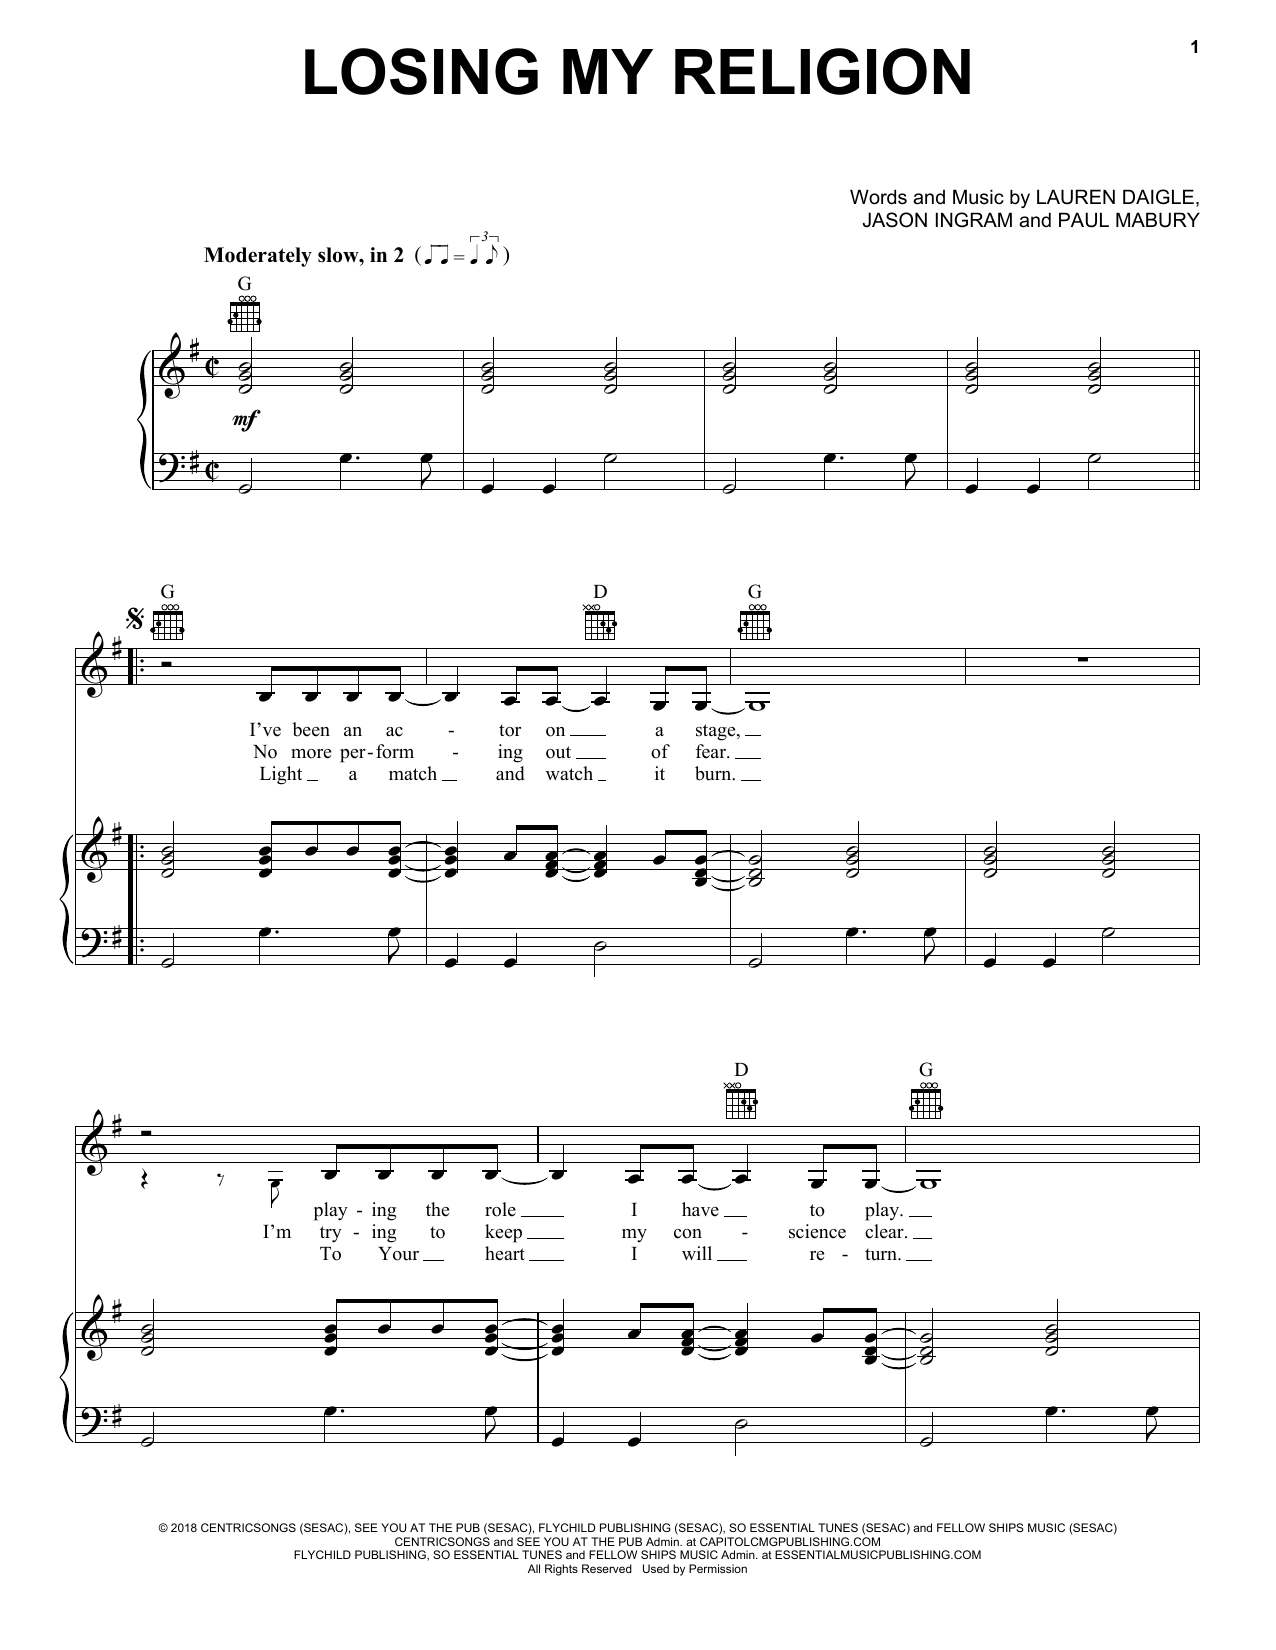 Lauren Daigle Losing My Religion sheet music notes and chords. Download Printable PDF.